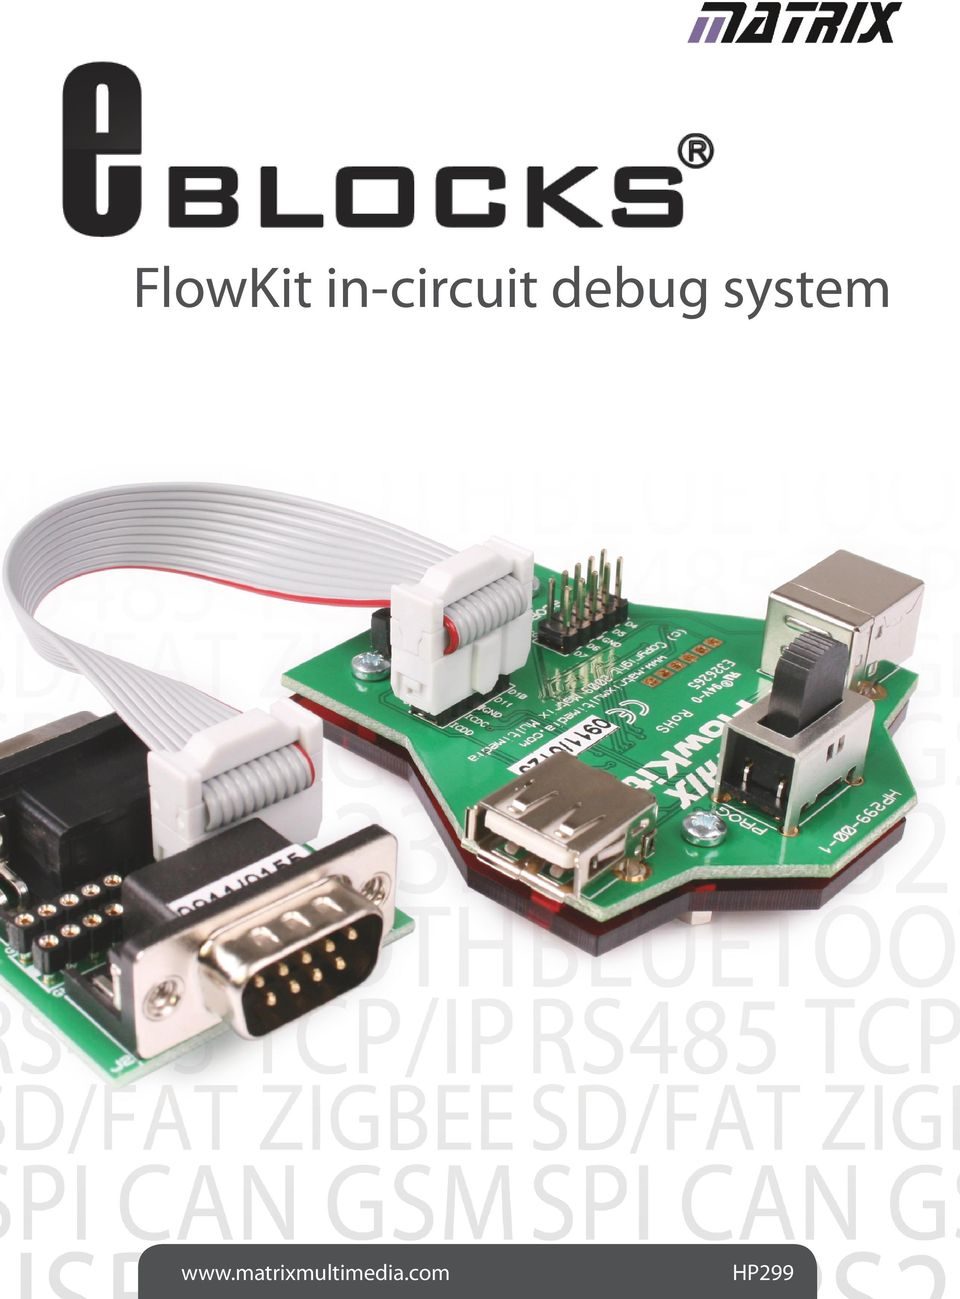 Flowkit In Circuit Debug System Pdf Atmel Usb Programmer Zif Socket Usbasp Atmega8 4 2 Contents About This Document 3 Board Layout General Information Detailed Operation Diagram 7 Copyright